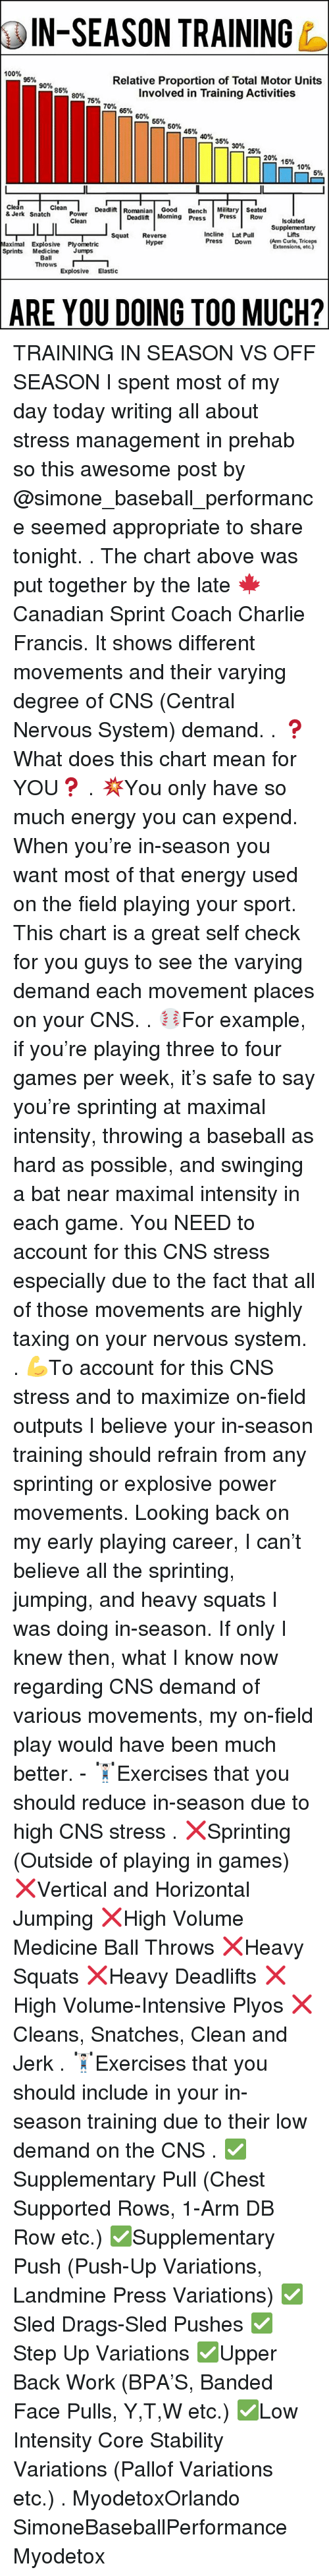 Anaconda, Baseball, and Charlie: IN-SEASON TRAINING  100%  95%  Relative Proportion of Total Motor Units  90%  85%  involved in Training Activities  80%  75%  70%  60%  55%  50%  35%  30%  25%  20%  15%  10%  5%  Clean  Clean  Deadlift Romanian  Good  Military Seated  Bench  snatch Power  Clean  & Jerk Deadlift Morning Press  Press  Row Isolated  Supplementary  Incline Lat Pull  Squat  Reverse  Press  Down  (Arm Curls, Triceps  Hyper  Maximal Explosive Plyometric  Extensions, etc.)  Jumps  Sprints  Medicine  Ball  Throws  Explosive  Elastic  ARE YOU DOING TOO MUCH? TRAINING IN SEASON VS OFF SEASON I spent most of my day today writing all about stress management in prehab so this awesome post by @simone_baseball_performance seemed appropriate to share tonight. . The chart above was put together by the late 🍁Canadian Sprint Coach Charlie Francis. It shows different movements and their varying degree of CNS (Central Nervous System) demand. . ❓What does this chart mean for YOU❓ . 💥You only have so much energy you can expend. When you're in-season you want most of that energy used on the field playing your sport. This chart is a great self check for you guys to see the varying demand each movement places on your CNS. . ⚾️For example, if you're playing three to four games per week, it's safe to say you're sprinting at maximal intensity, throwing a baseball as hard as possible, and swinging a bat near maximal intensity in each game. You NEED to account for this CNS stress especially due to the fact that all of those movements are highly taxing on your nervous system. . 💪To account for this CNS stress and to maximize on-field outputs I believe your in-season training should refrain from any sprinting or explosive power movements. Looking back on my early playing career, I can't believe all the sprinting, jumping, and heavy squats I was doing in-season. If only I knew then, what I know now regarding CNS demand of various movements, my on-field play would have been much better. - 🏋🏻Exercises that you should reduce in-season due to high CNS stress . ❌Sprinting (Outside of playing in games) ❌Vertical and Horizontal Jumping ❌High Volume Medicine Ball Throws ❌Heavy Squats ❌Heavy Deadlifts ❌High Volume-Intensive Plyos ❌Cleans, Snatches, Clean and Jerk . 🏋🏻Exercises that you should include in your in-season training due to their low demand on the CNS . ✅Supplementary Pull (Chest Supported Rows, 1-Arm DB Row etc.) ✅Supplementary Push (Push-Up Variations, Landmine Press Variations) ✅Sled Drags-Sled Pushes ✅Step Up Variations ✅Upper Back Work (BPA'S, Banded Face Pulls, Y,T,W etc.) ✅Low Intensity Core Stability Variations (Pallof Variations etc.) . MyodetoxOrlando SimoneBaseballPerformance Myodetox